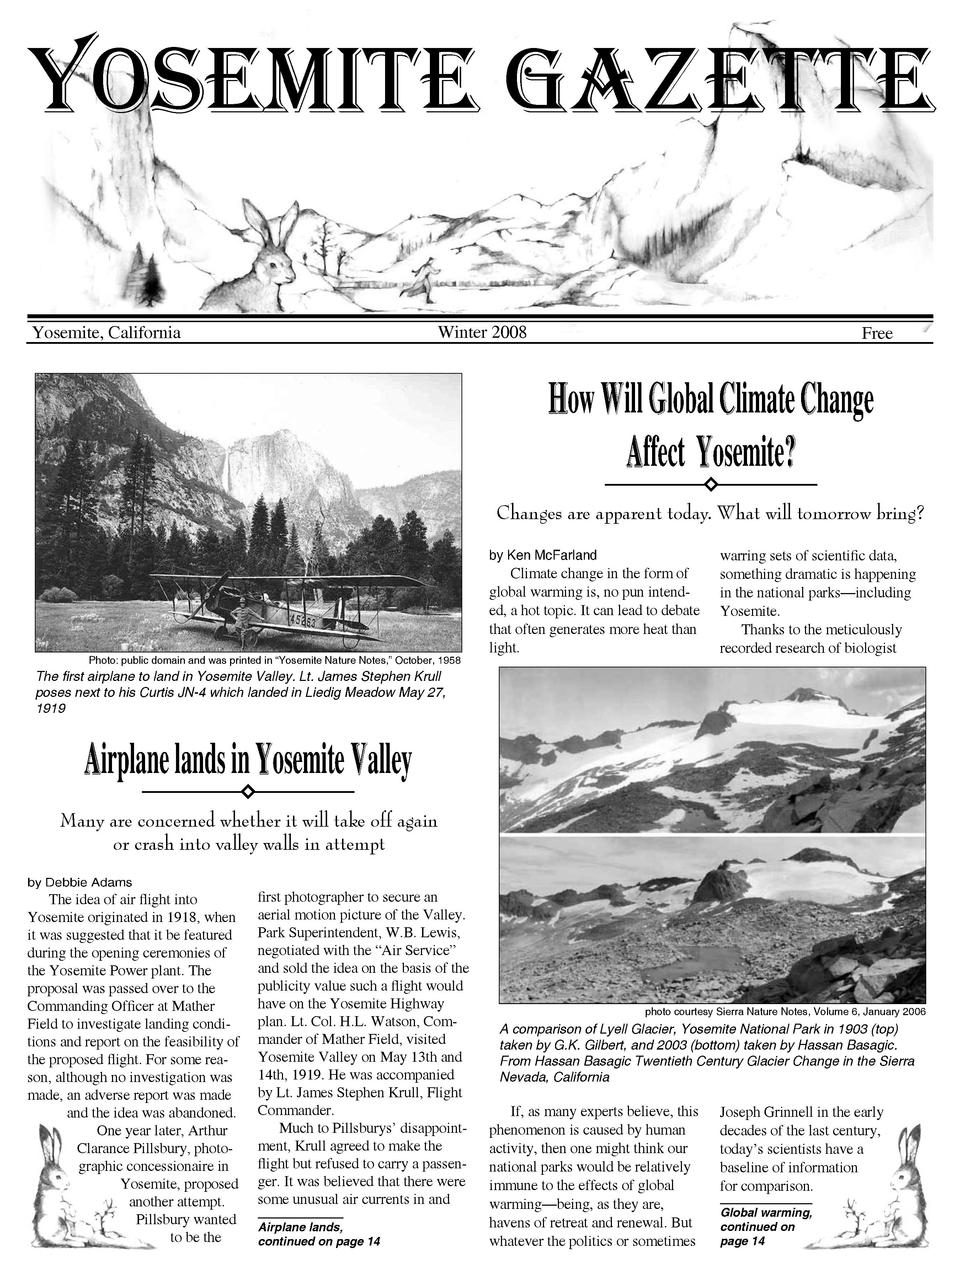 Yosemite Gazette Winter 2008  Yosemite, California  Free  How Will Global Climate Change Affect Yosemite  Changes are appa...